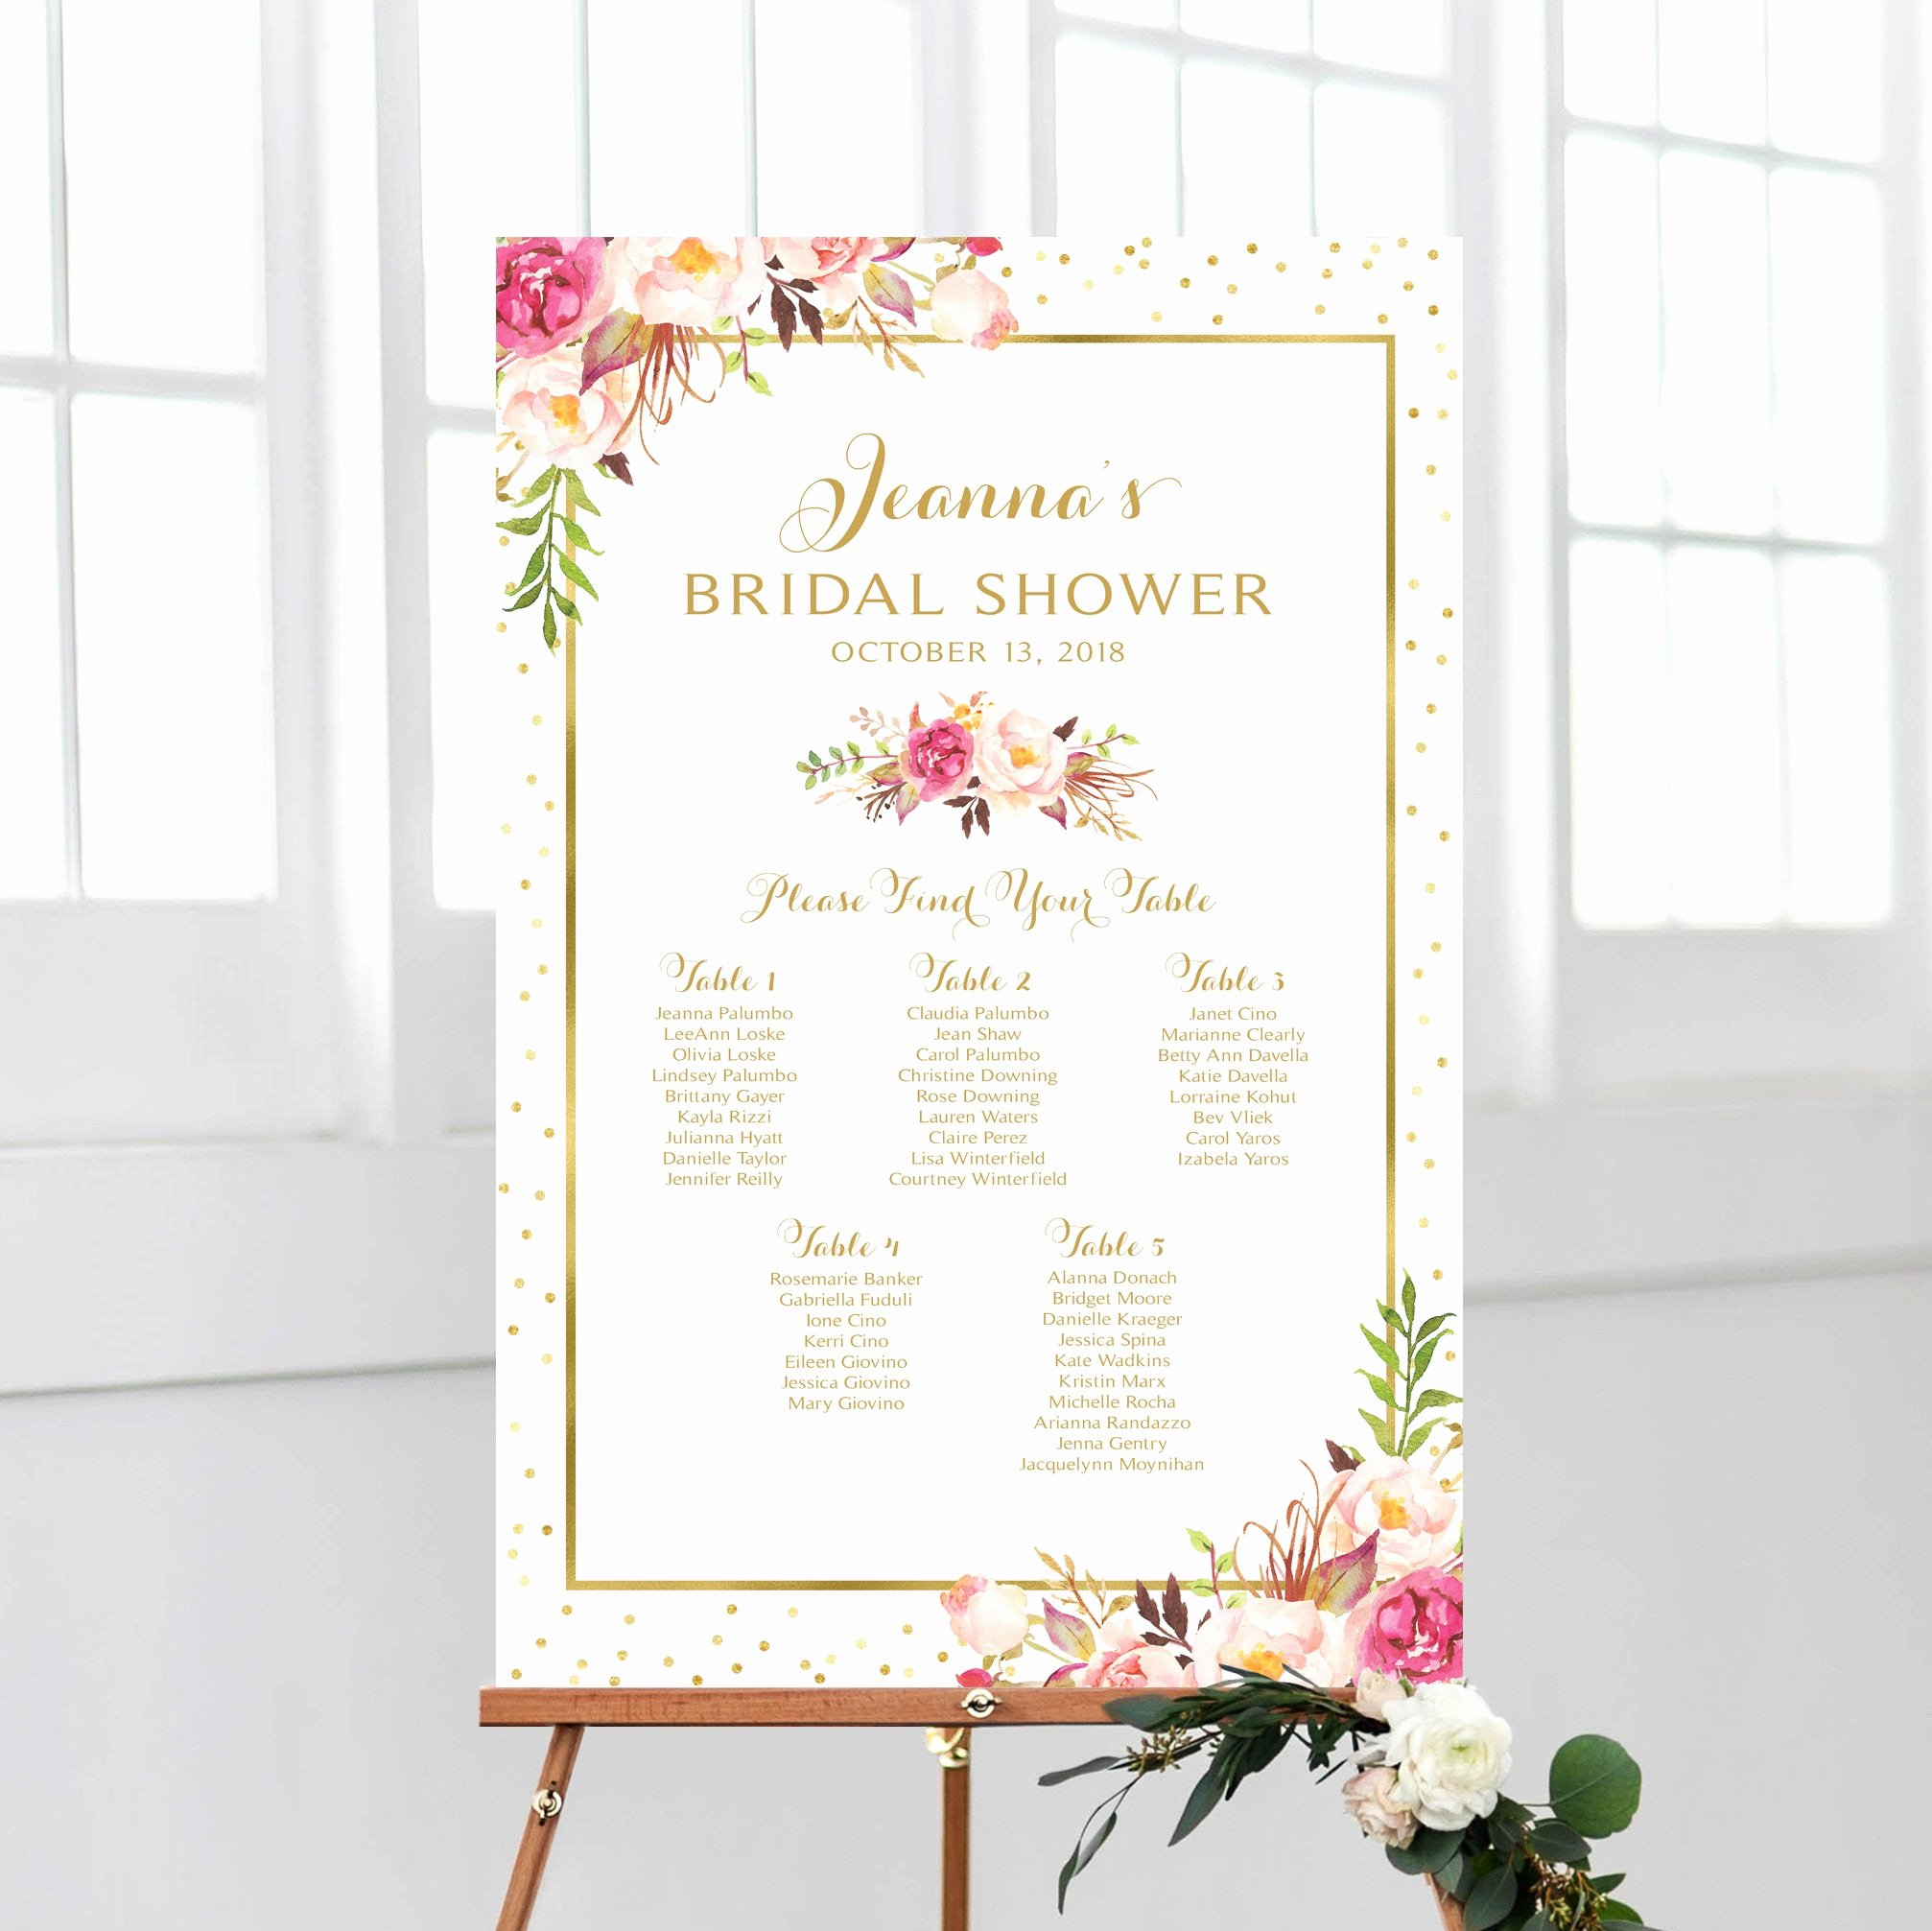 Bridal Shower Seating Chart Fresh Bridal Shower Seating Chart by Table Seating Plan